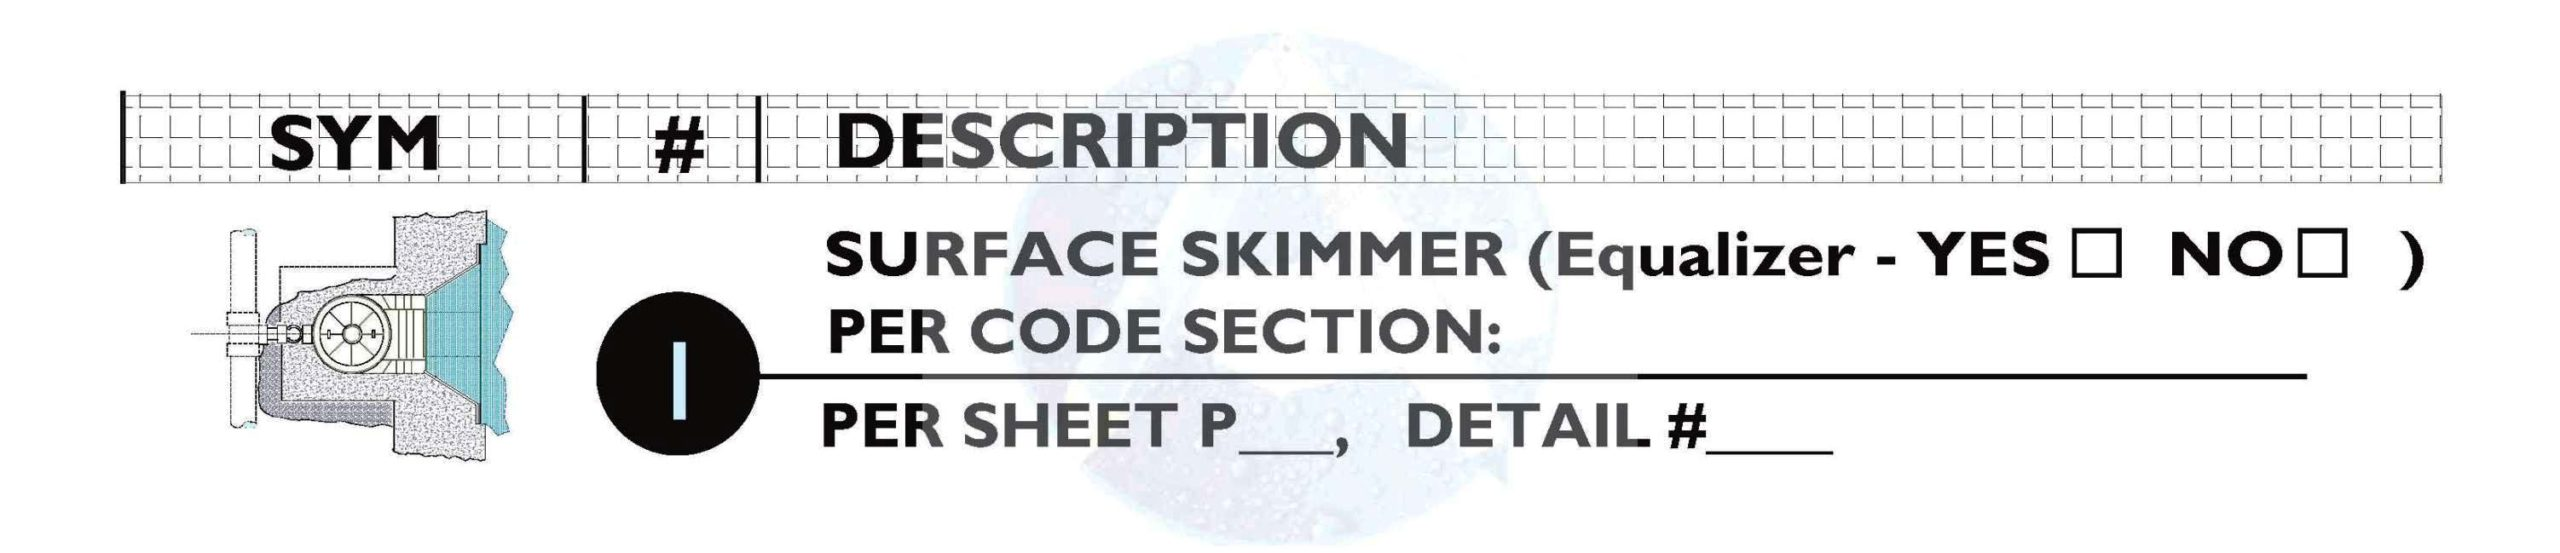 #1 SURFACE SKIMMER